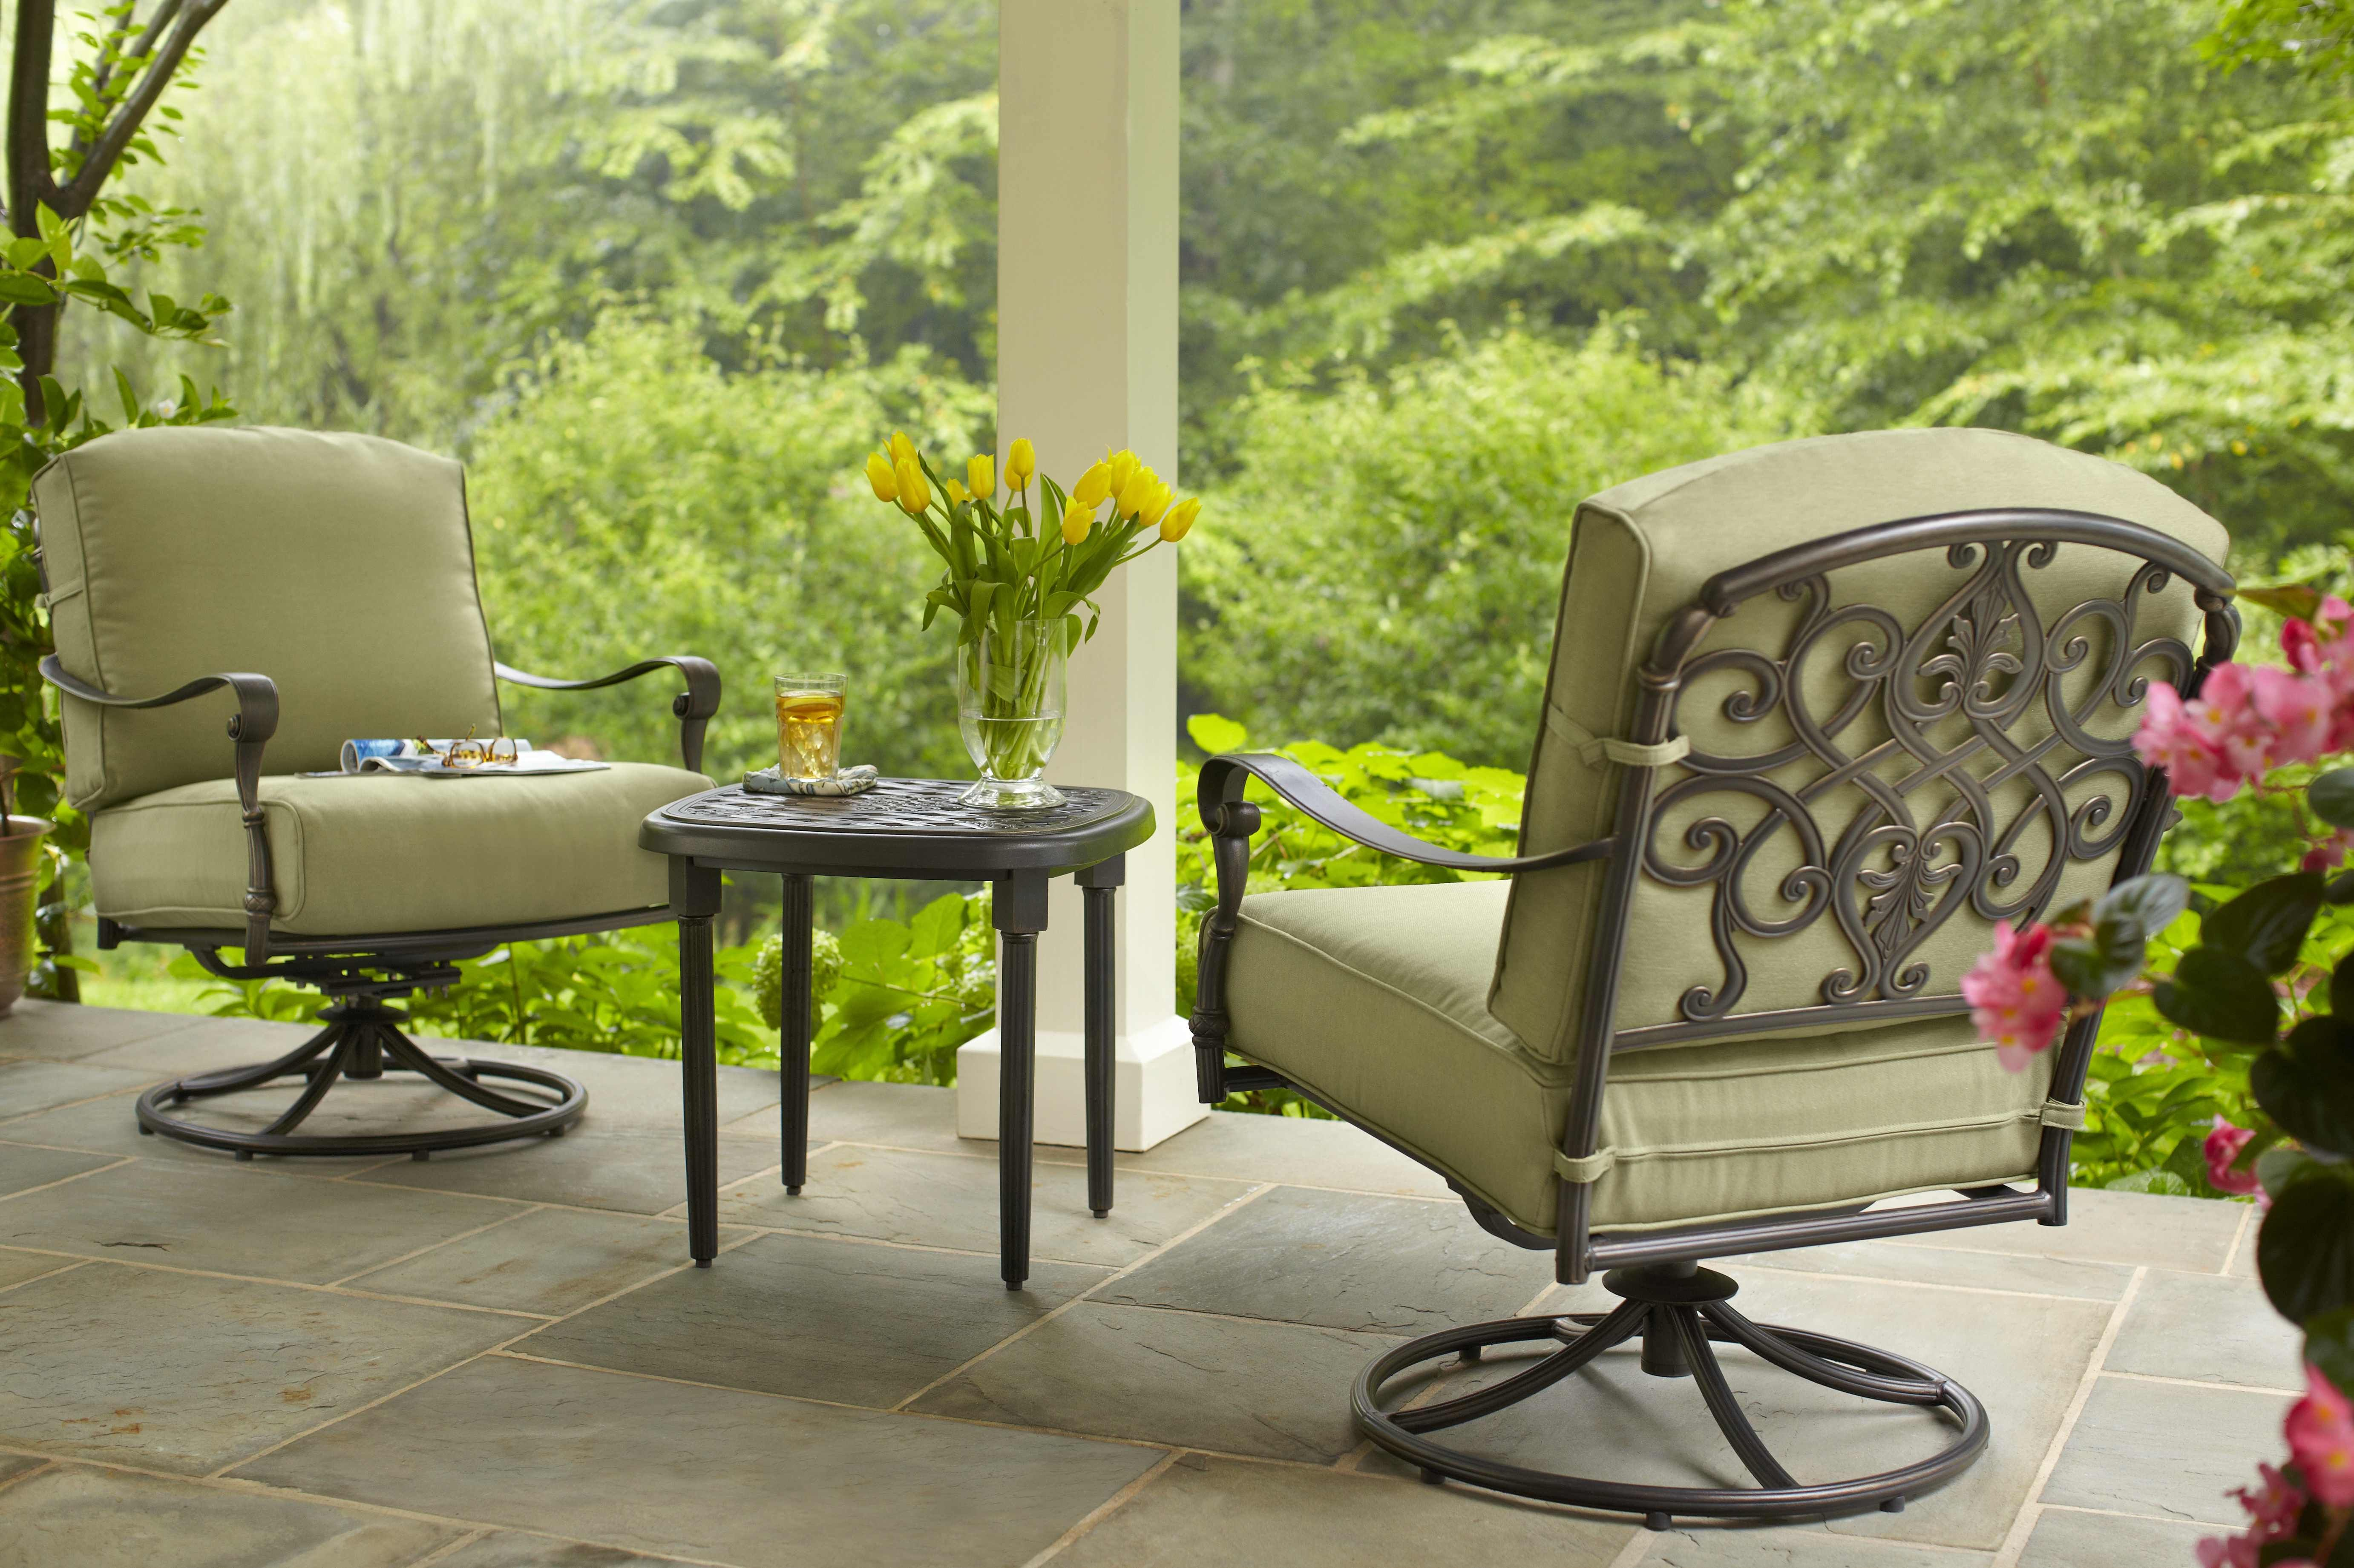 Edington swivel rocking lounge chair available at The Home